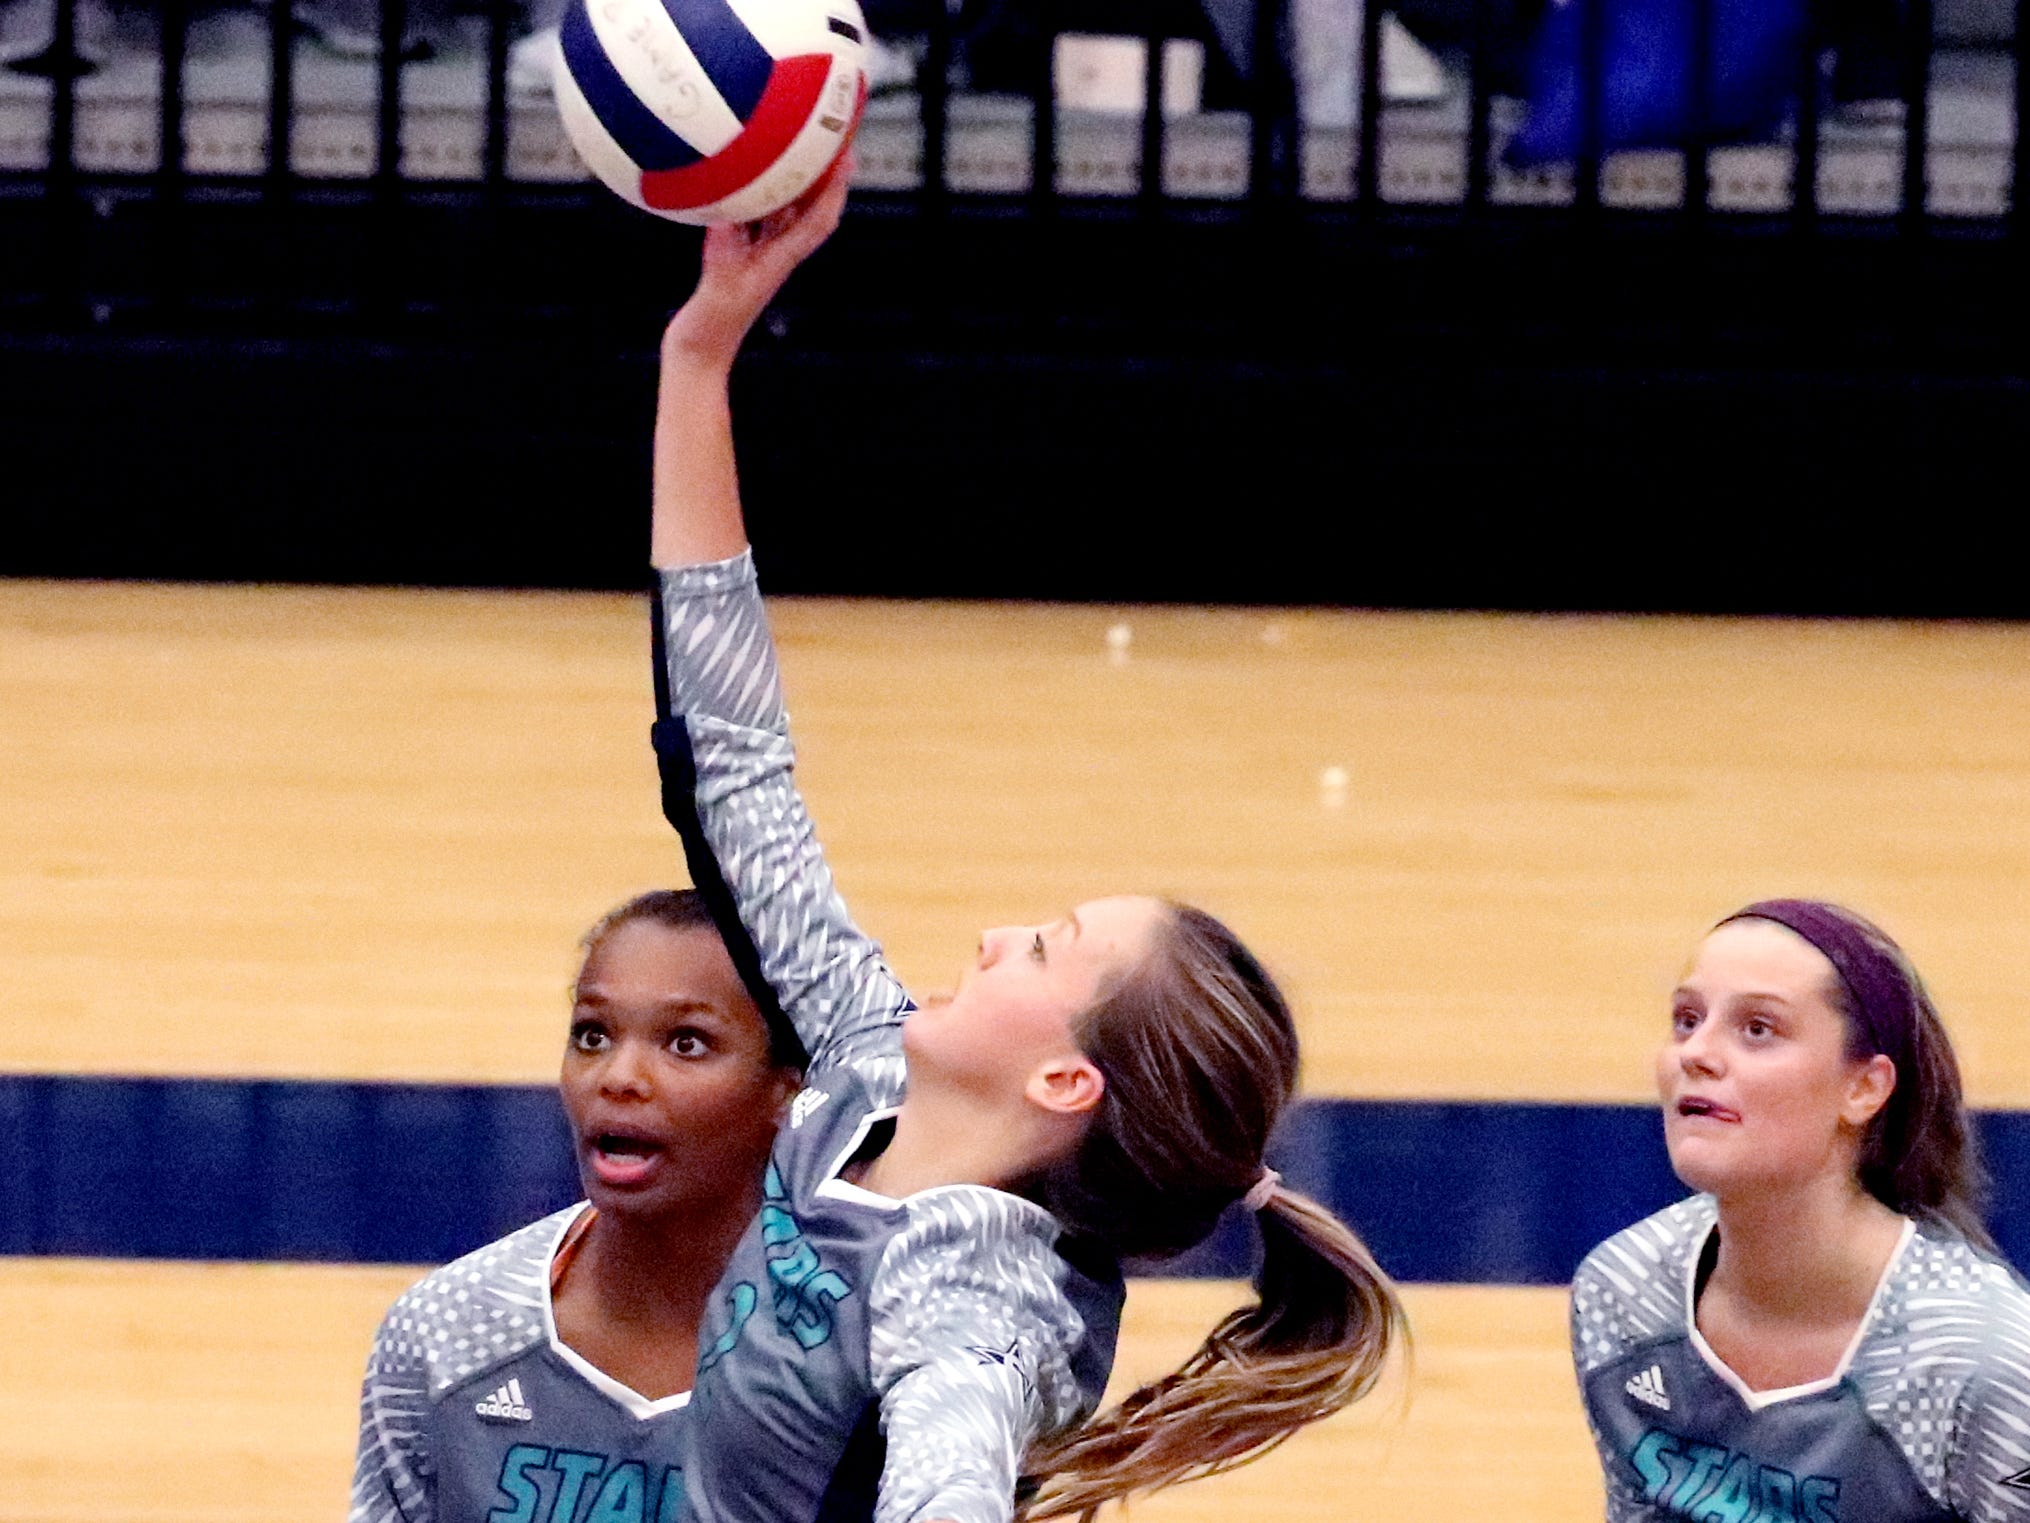 Siegel's Emily Phillips (2) hits the ball over the net during the Class AAA sectional against Cleveland Thursday, Oct. 11, 2018. Siegel beat Cleveland to advance to the State Championship tournament.